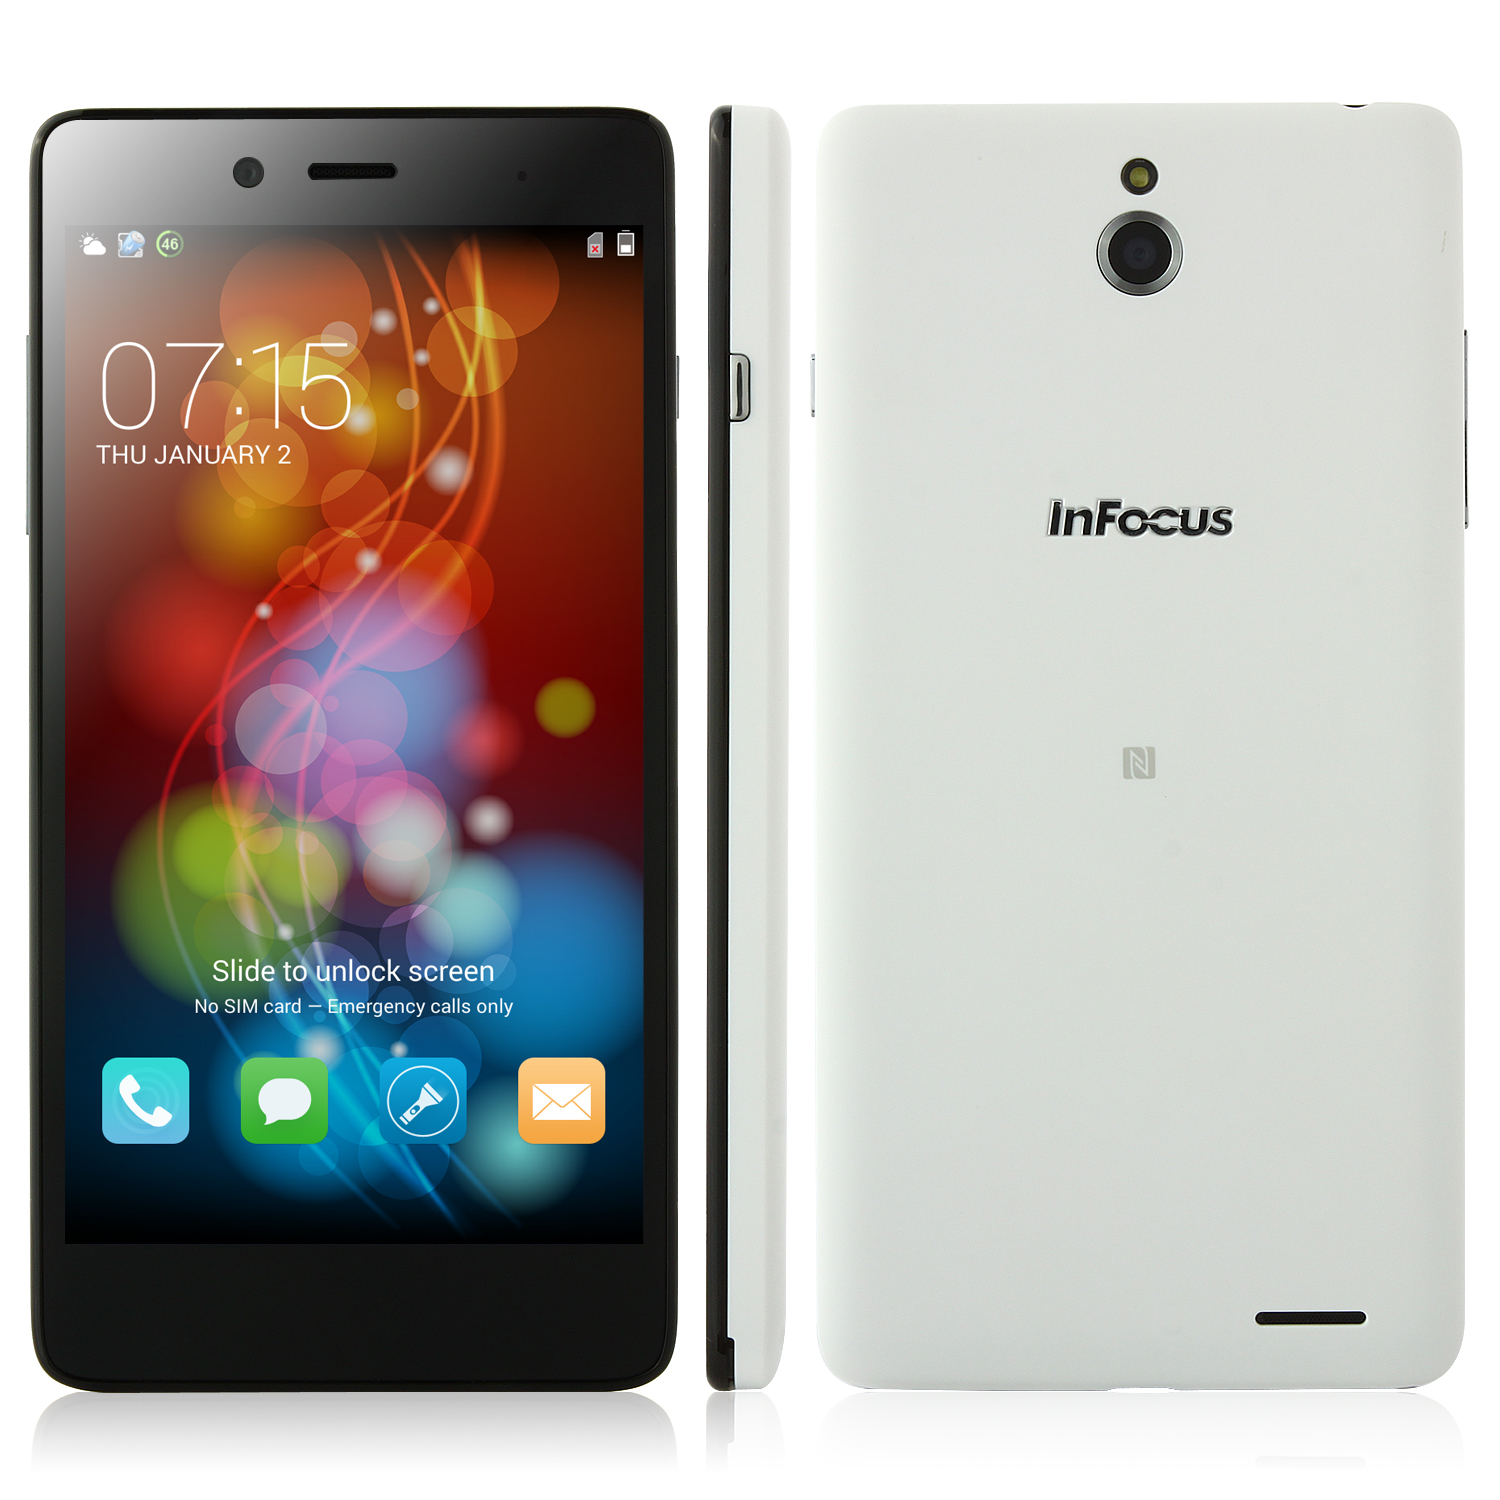 Used Foxconn InFocus M512 Smartphone 4G LTE Snapdragon 400 5.0 Inch Gorilla Glass NFC